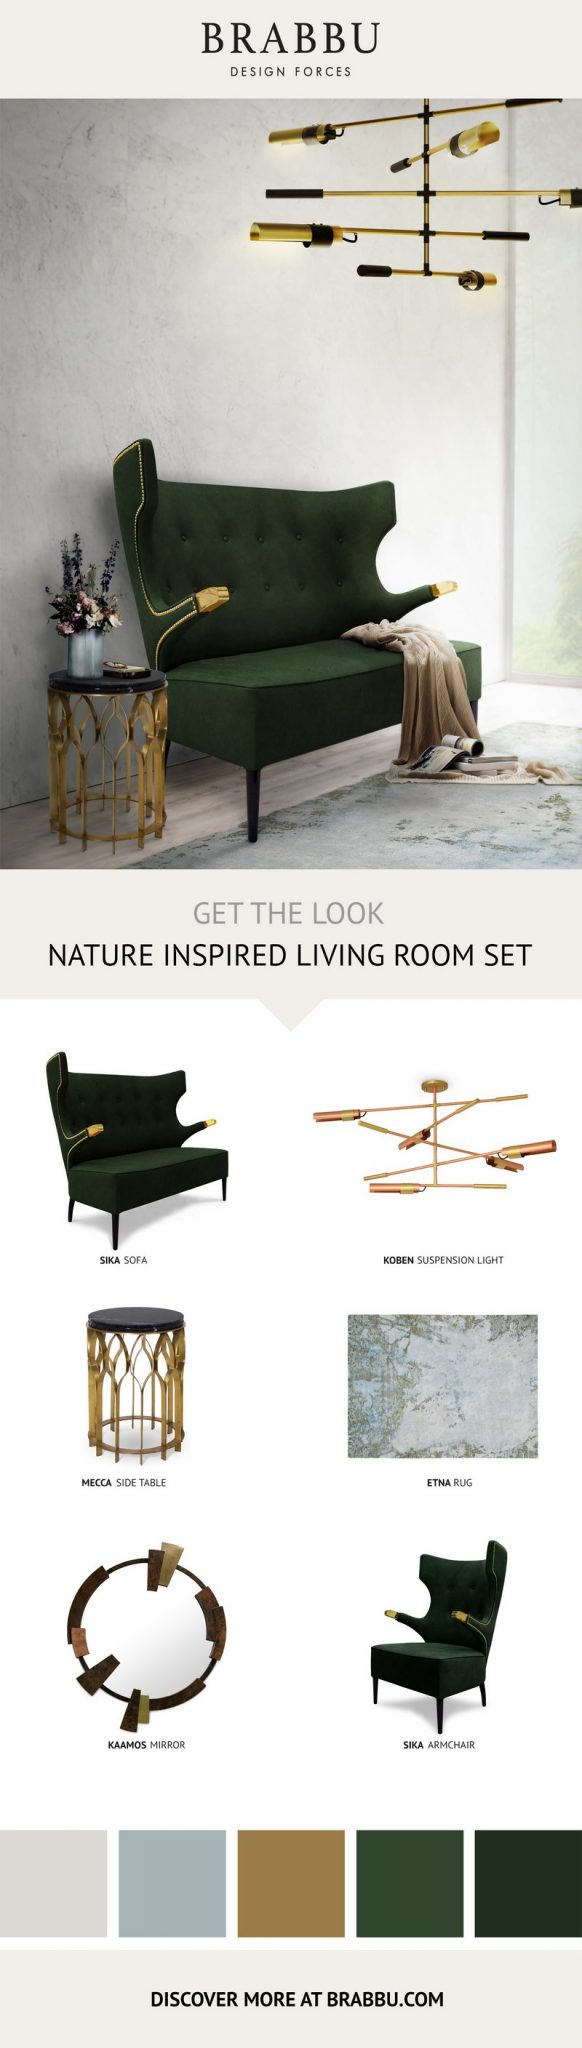 Get-The-Look-5 home decor home decor Remodel Your Home Decor with Remarkable Mood Boards from Brabbu Get The Look 5